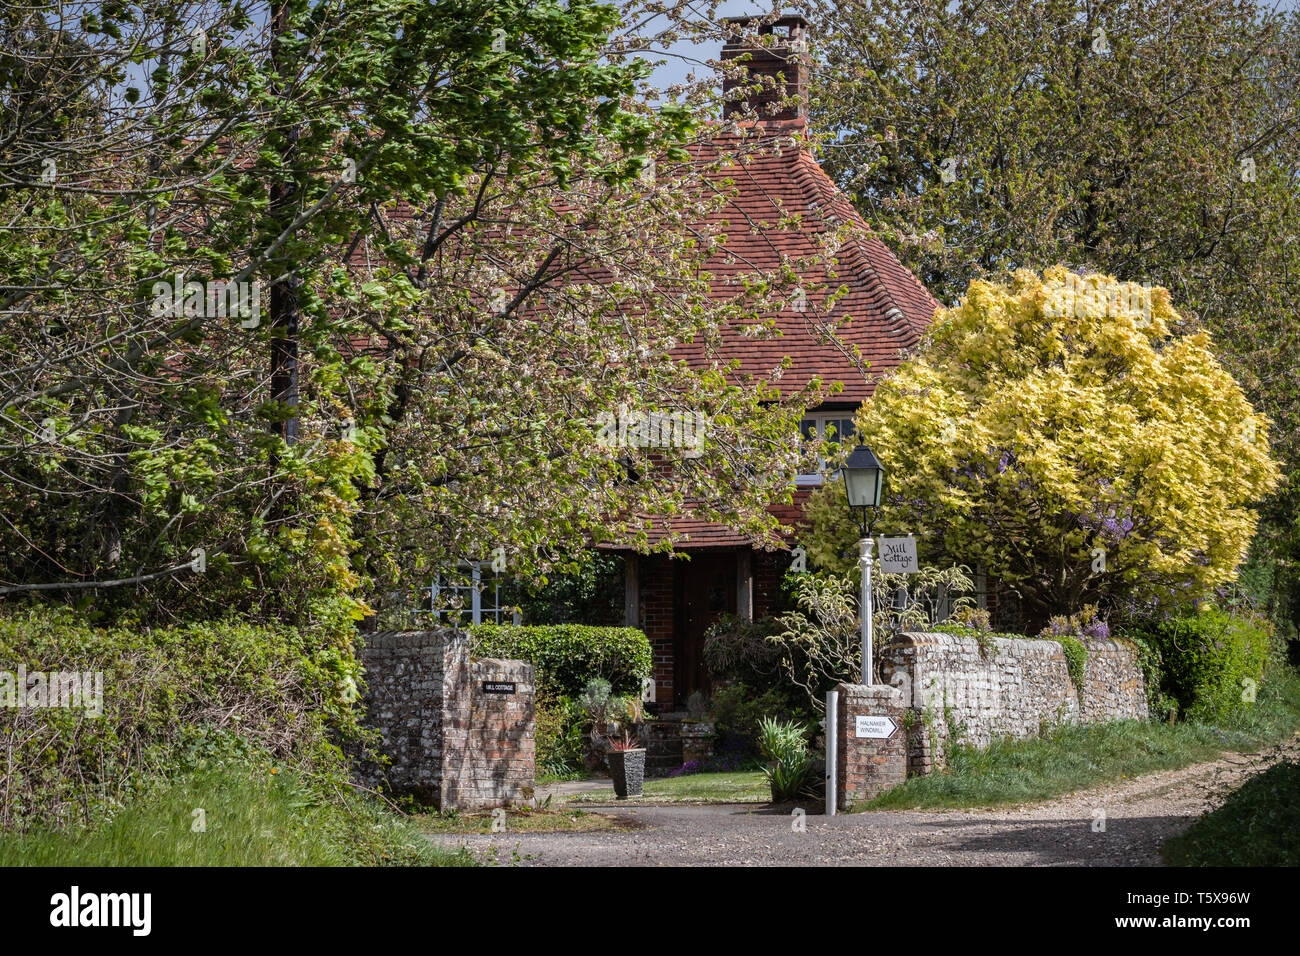 Cozy English Country cottage surrounded by trees - Stock Image